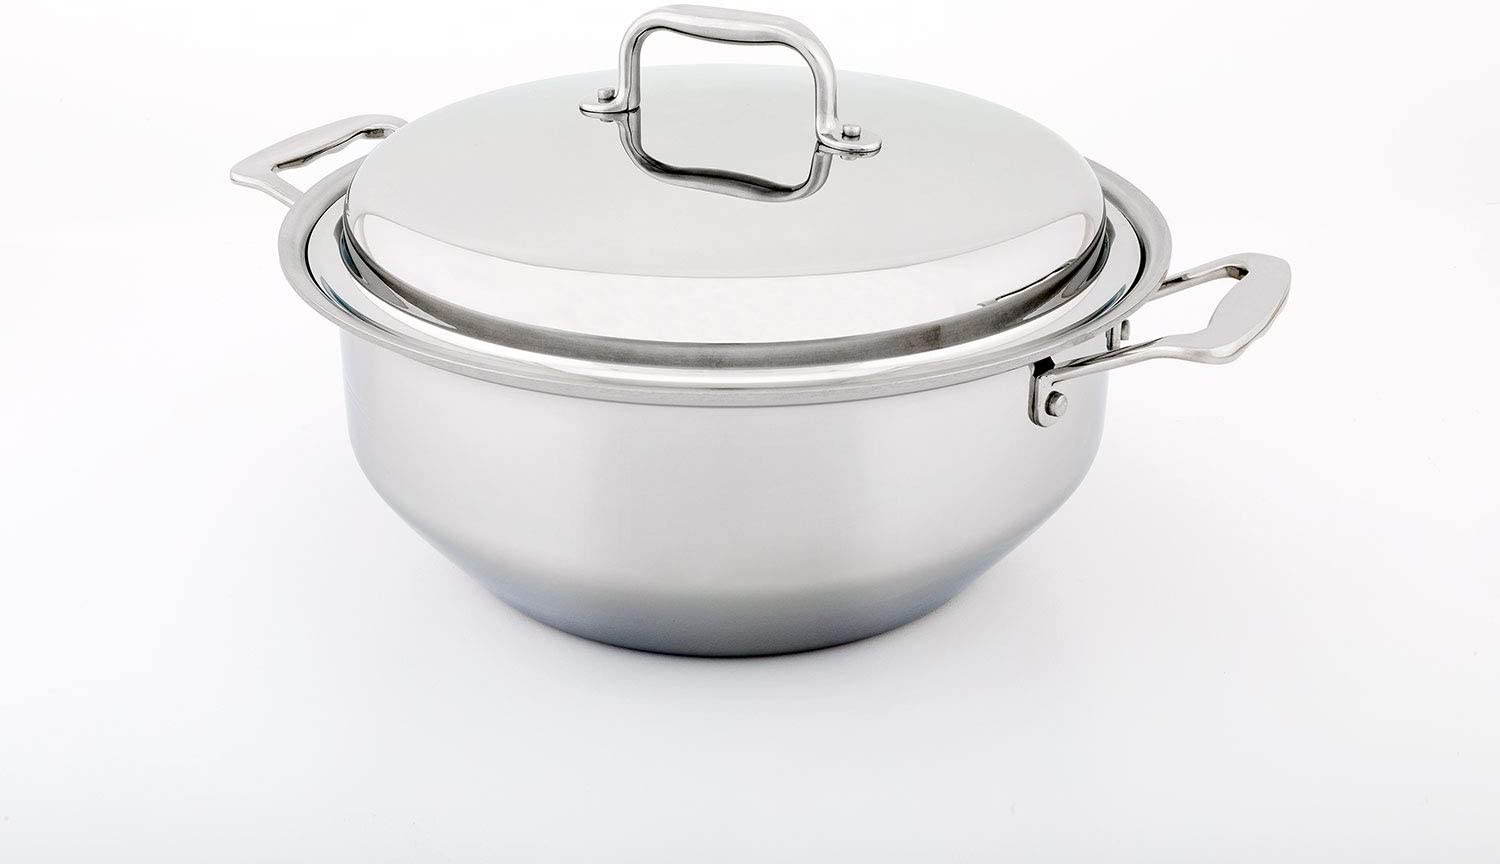 360 Stainless Steel Stock Pot (6 Quart Gourmet), Gourmet Stockpot is Induction Cookware, Handcrafted in the USA, Waterless Cookware, Oven Safe, Stainless Steel Cookware (6 Quart Gourmet)